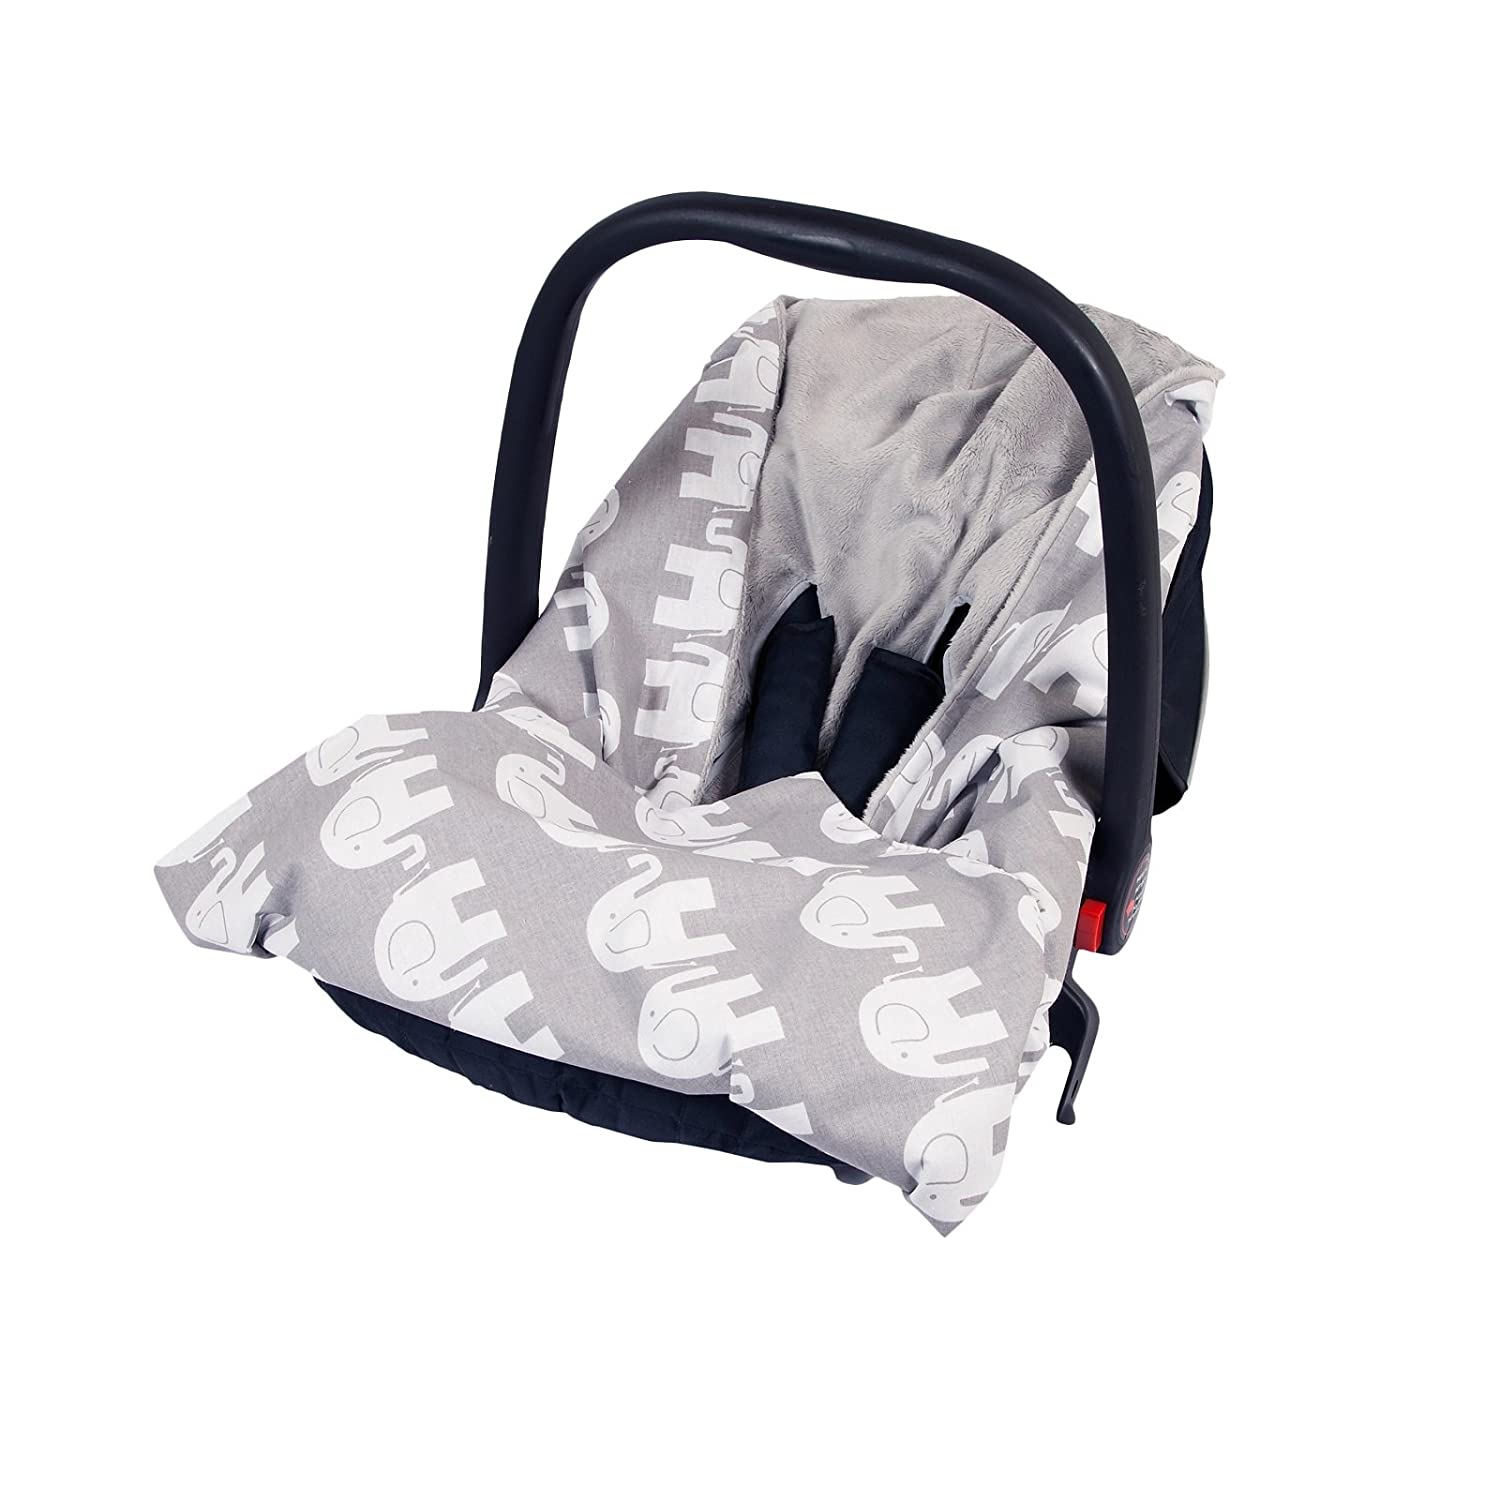 New Cotton Soft Plush Baby Wrap For Car Seat Travel